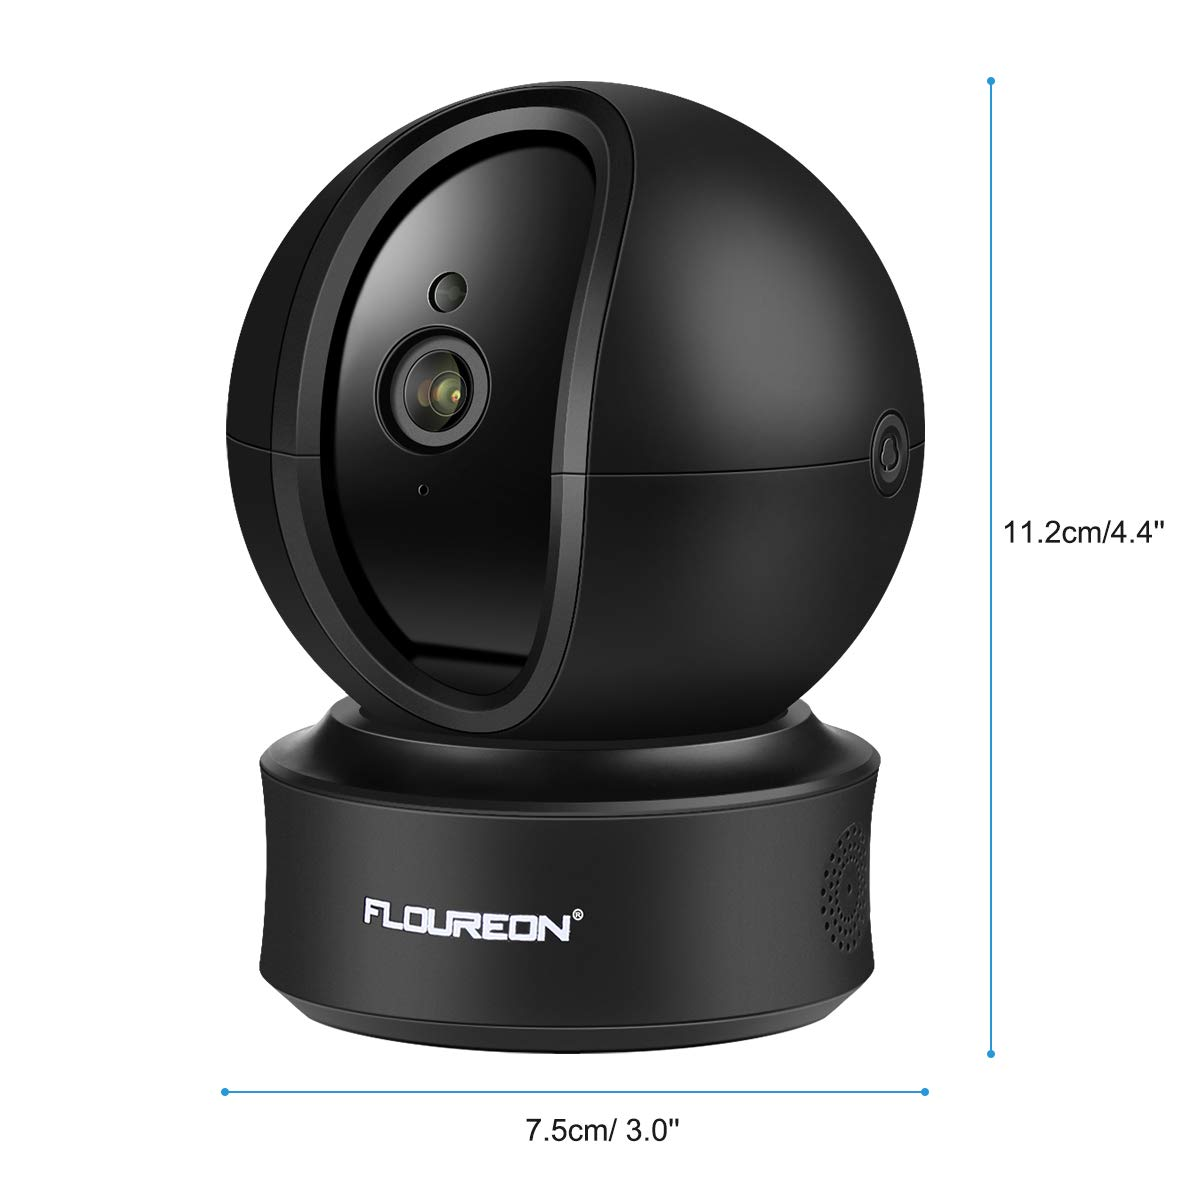 FLOUREON 1080P 2.0 MP WIFI IP Camera Home Security Surveillance Smart IP Camera with Automatic tracking 360° 3D Built-in Microphone Pan/Tilt PT Wireless Micro SD Slot